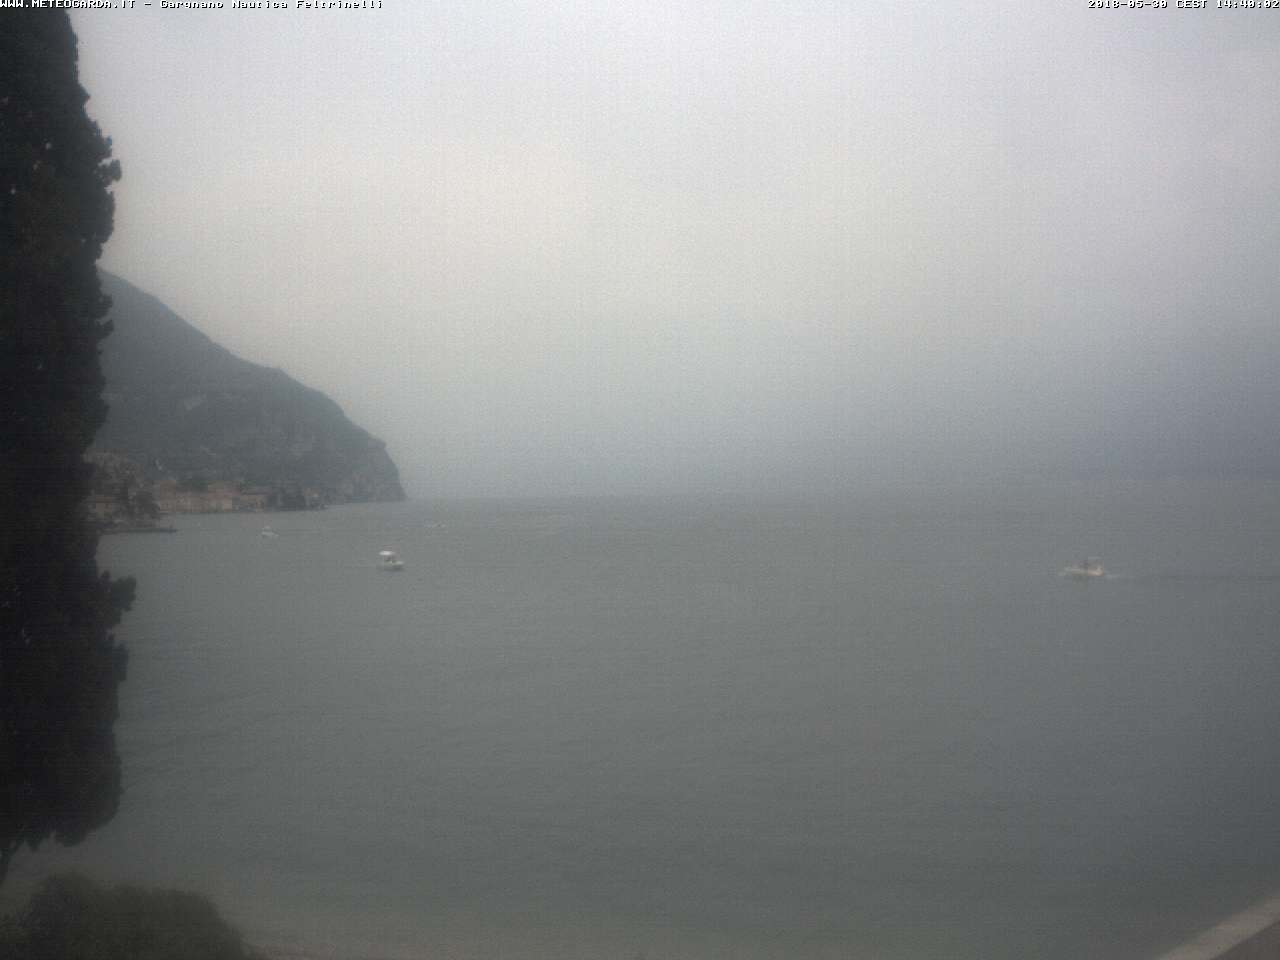 Gargnano webcam - Gargnano webcam, Lombardy, Brescia